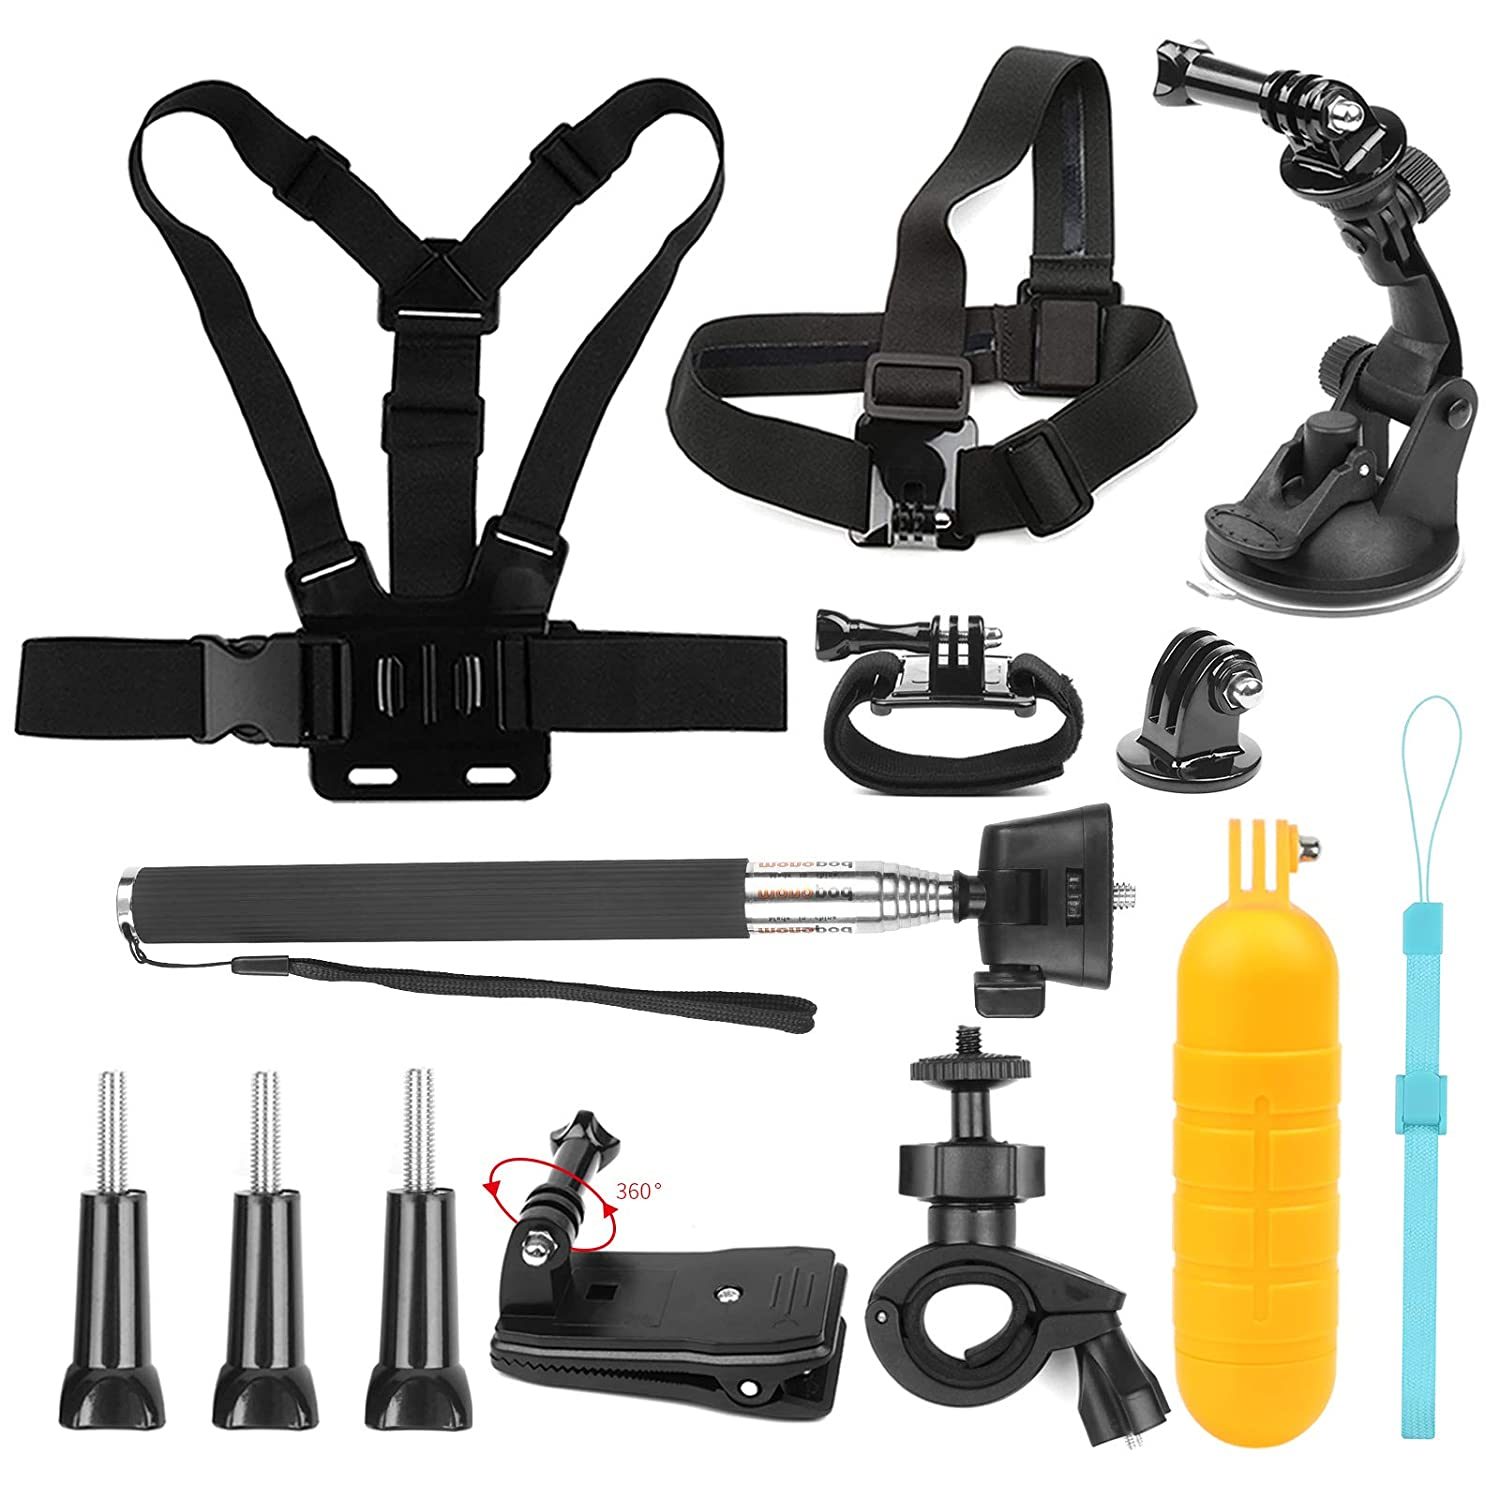 SHOOT 7in1 Travel Accessories Bundle Kit for GoPro Hero 6/5/4/3+/3/2/1/HERO(2018)/Fusion AKASO EK7000 APEMAN 4K WIFI Action Camera Rotational Backpack Clip,Head Belt Strap,Chest Belt Strap,Car Suction Cup Mount Holder, Floating bar